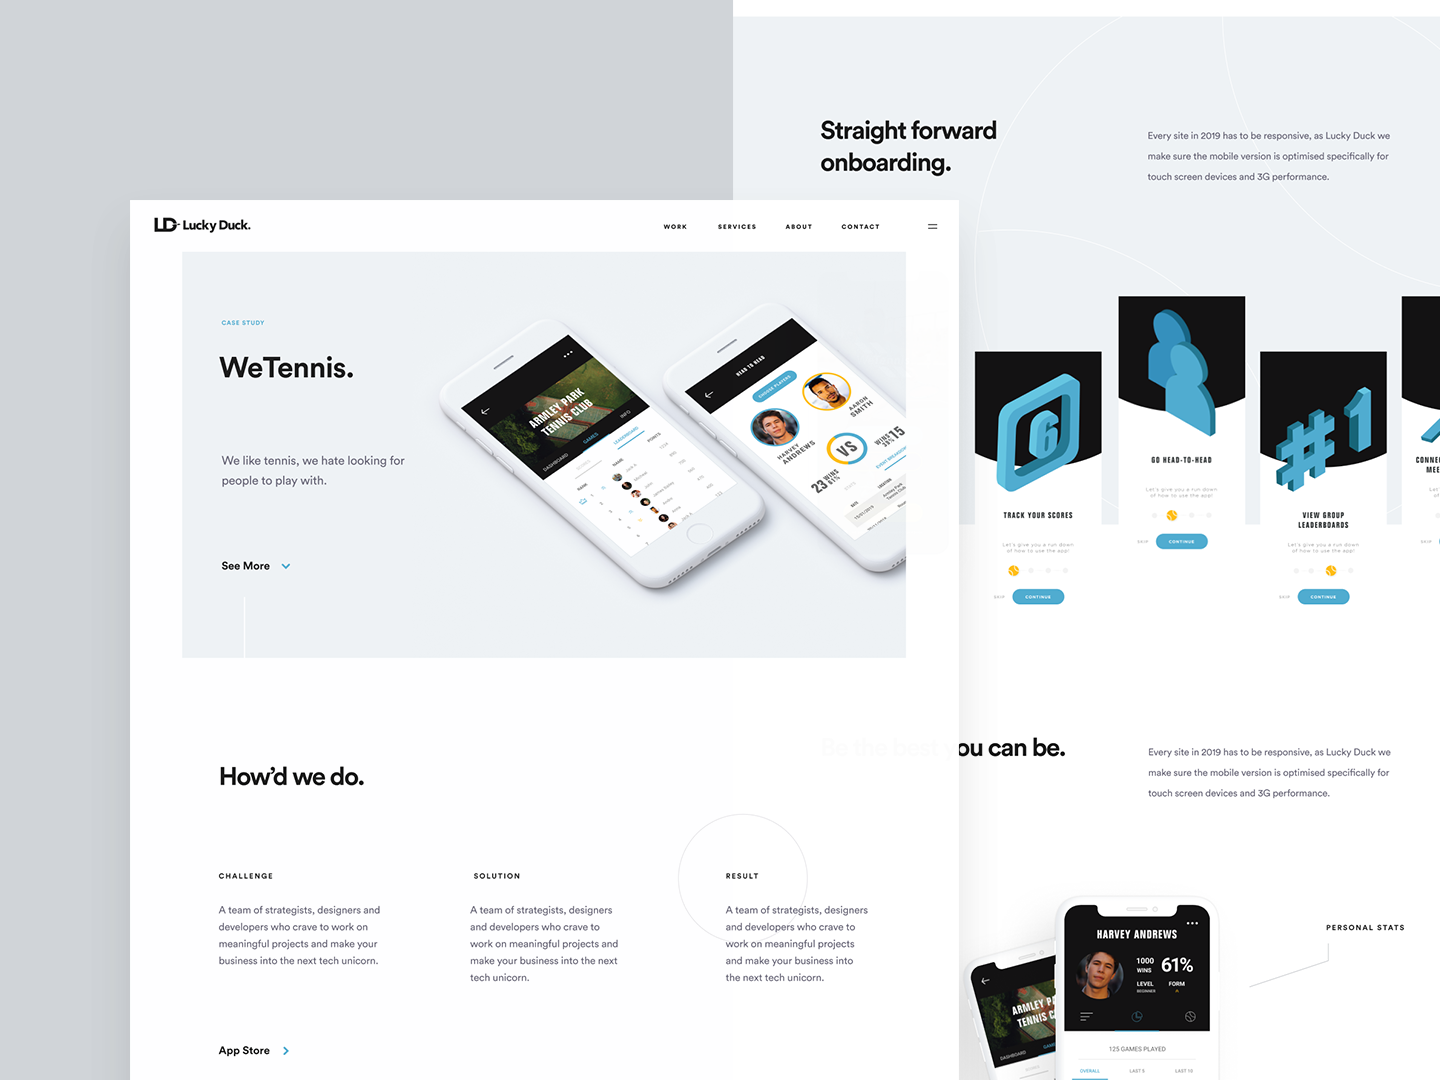 Wetennis Application Case Study By Lucky Duck Design Inspiration